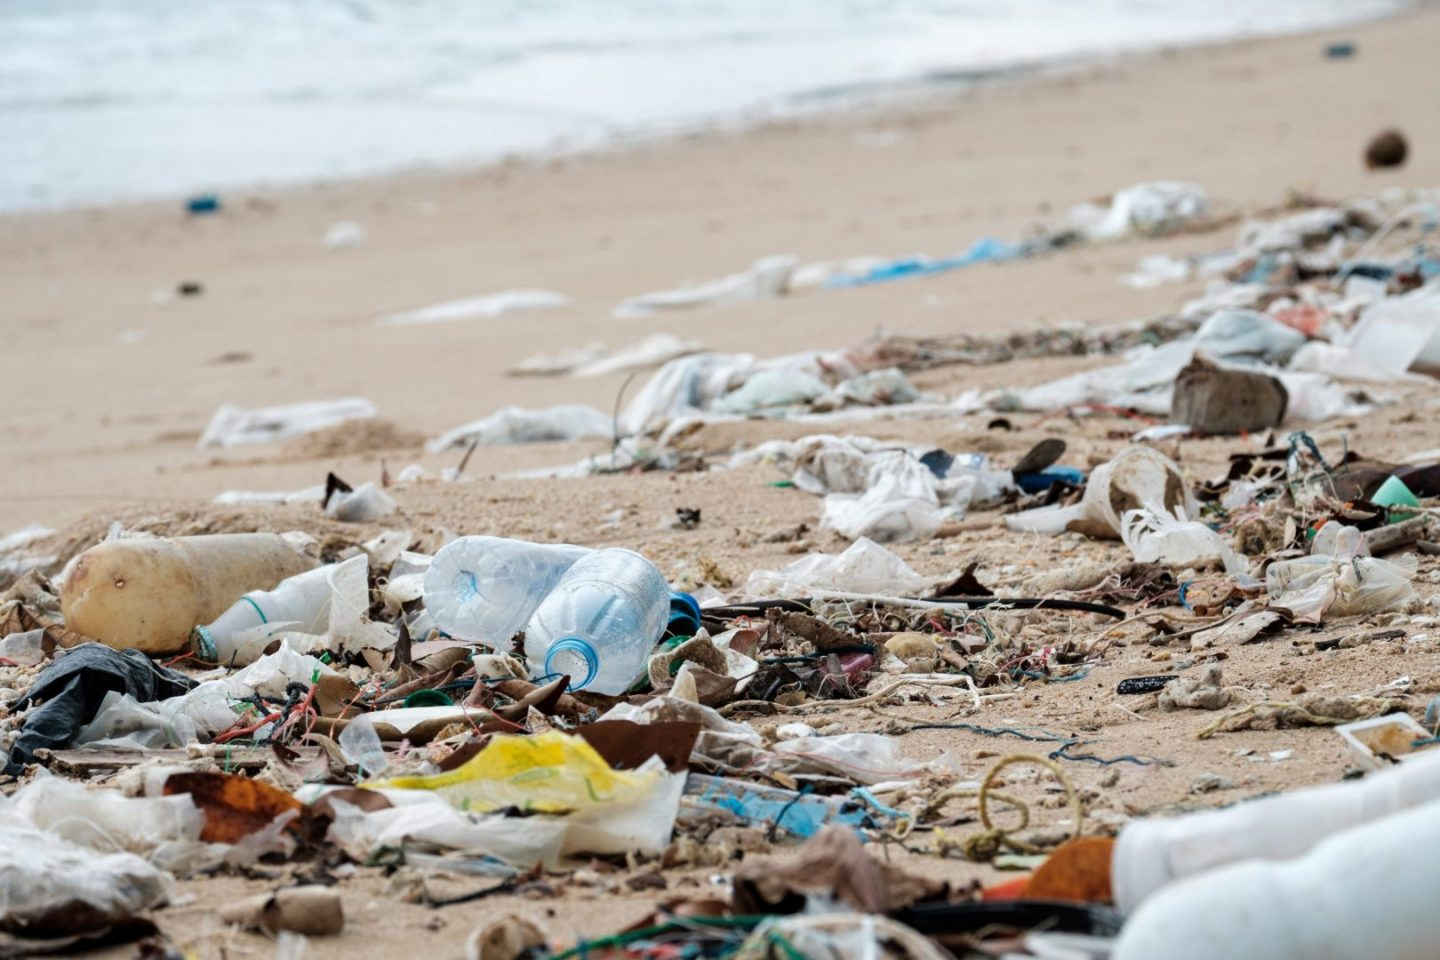 Beach pollution. Plastic bottles and other trash on the beach